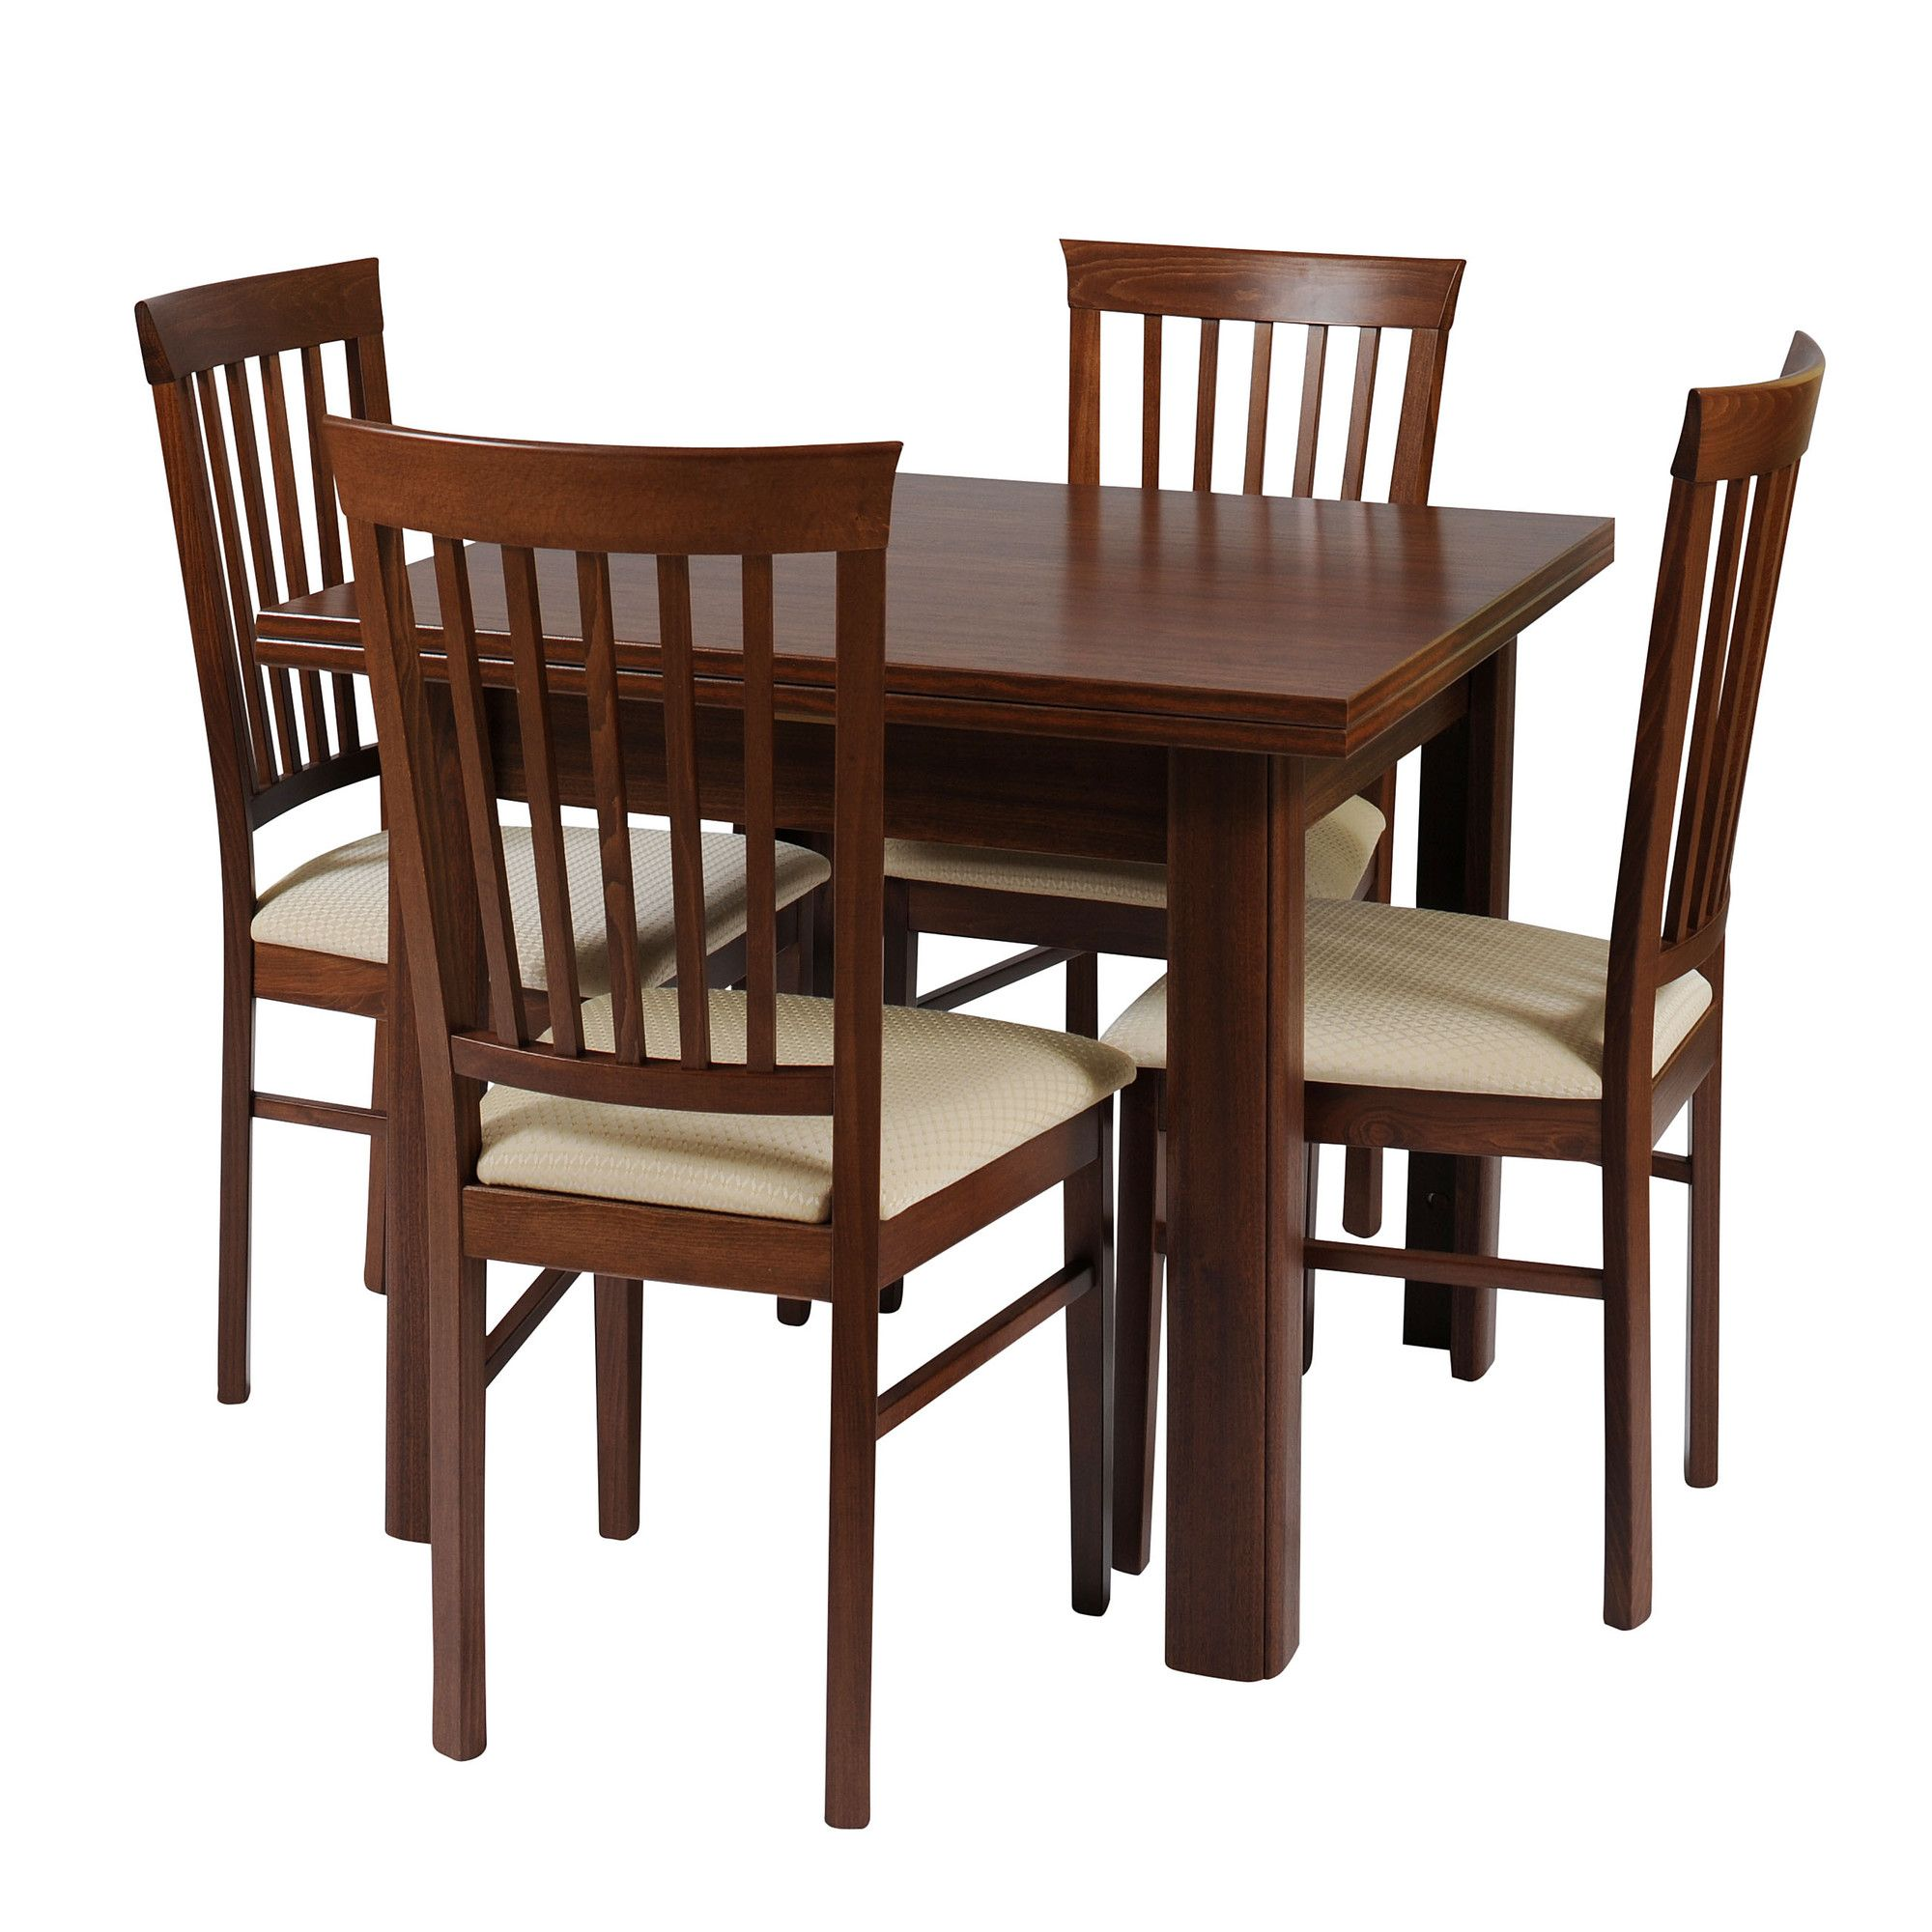 Caxton Byron Extending Dining Set with Slatted Back Chairs in Mahogany at Tescos Direct